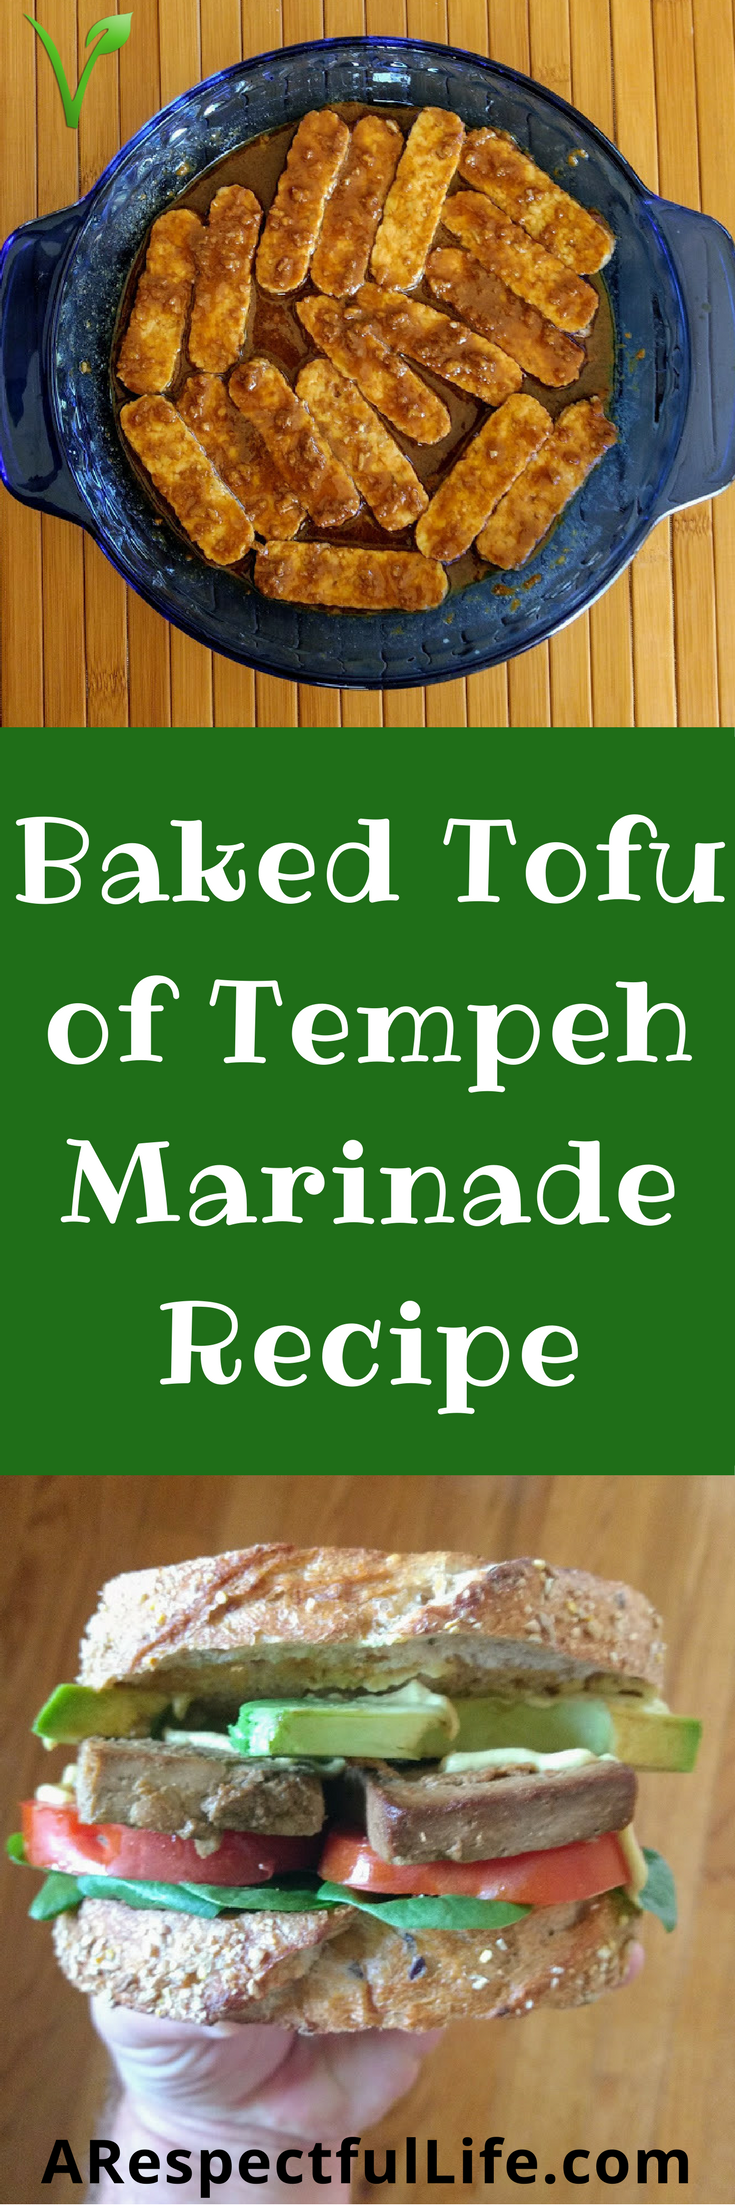 Baked Tofu or Tempeh Marinade Recipe